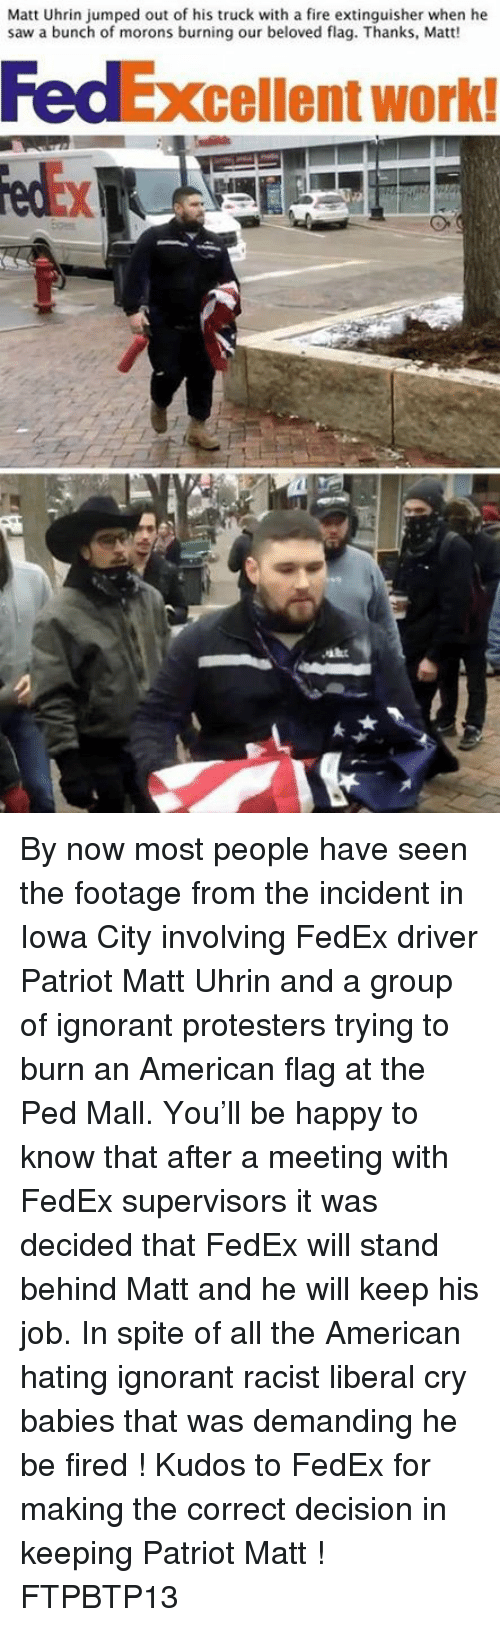 Liberal Crying: Matt Uhrin jumped out of his truck with a fire extinguisher when he  saw a bunch of morons burning our beloved flag. Thanks, Matt!  cellent work! By now most people have seen the footage from the incident in Iowa City involving FedEx driver Patriot Matt Uhrin and a group of ignorant protesters trying to burn an American flag at the Ped Mall.  You'll be happy to know that after a meeting with FedEx supervisors it was decided that FedEx will stand behind Matt and he will keep his job.   In spite of all the American hating ignorant racist liberal cry babies that was demanding he be fired !   Kudos to FedEx for making the correct decision in keeping Patriot Matt !   FTPBTP13